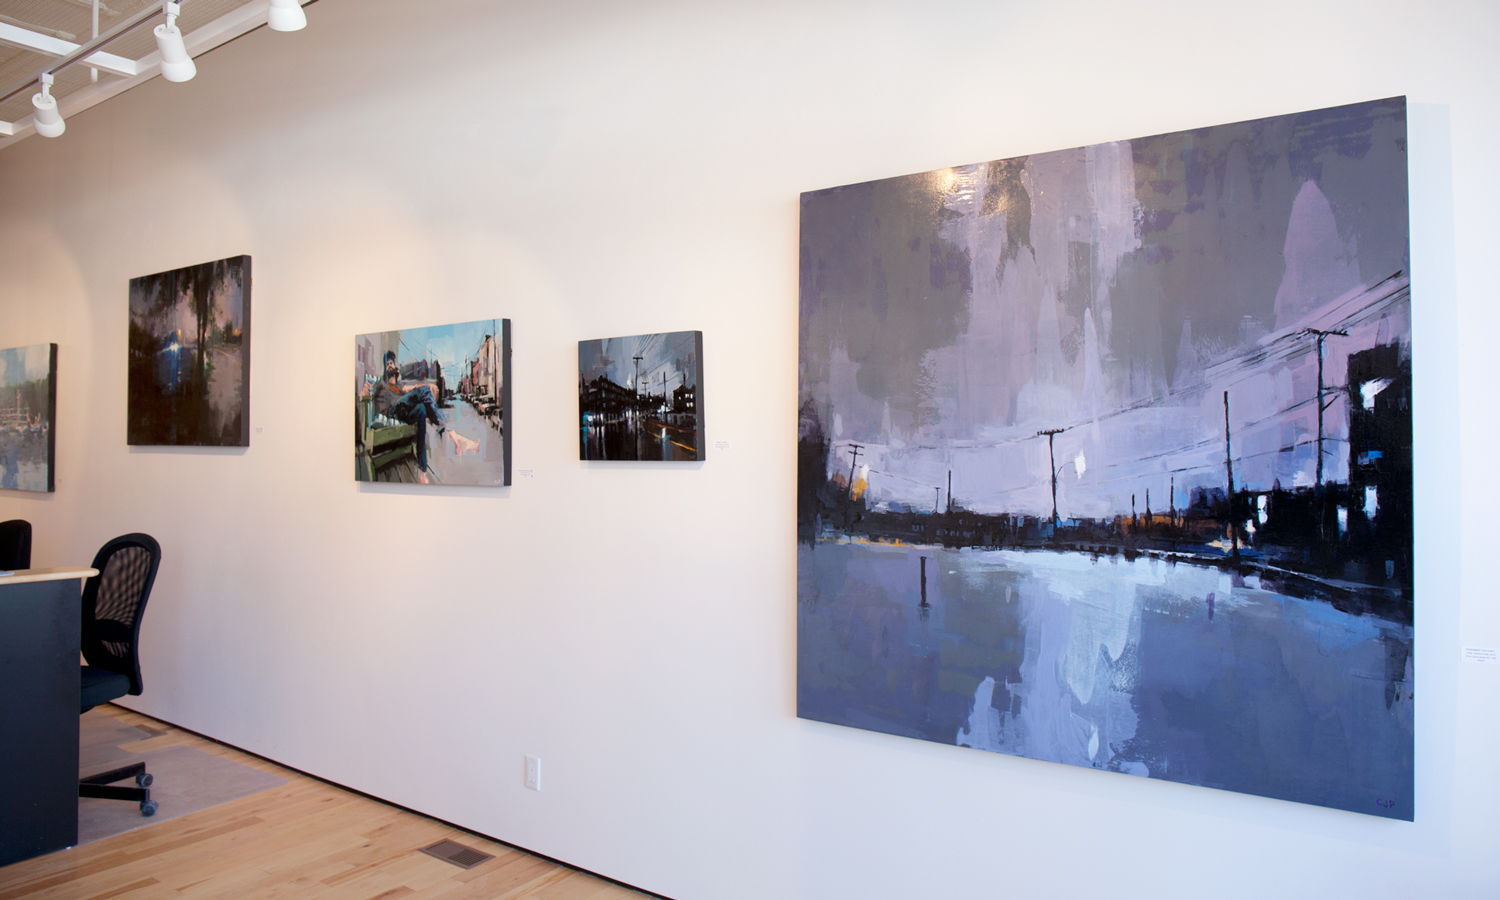 Jeremy Price paintings at Sivarulrasa Gallery